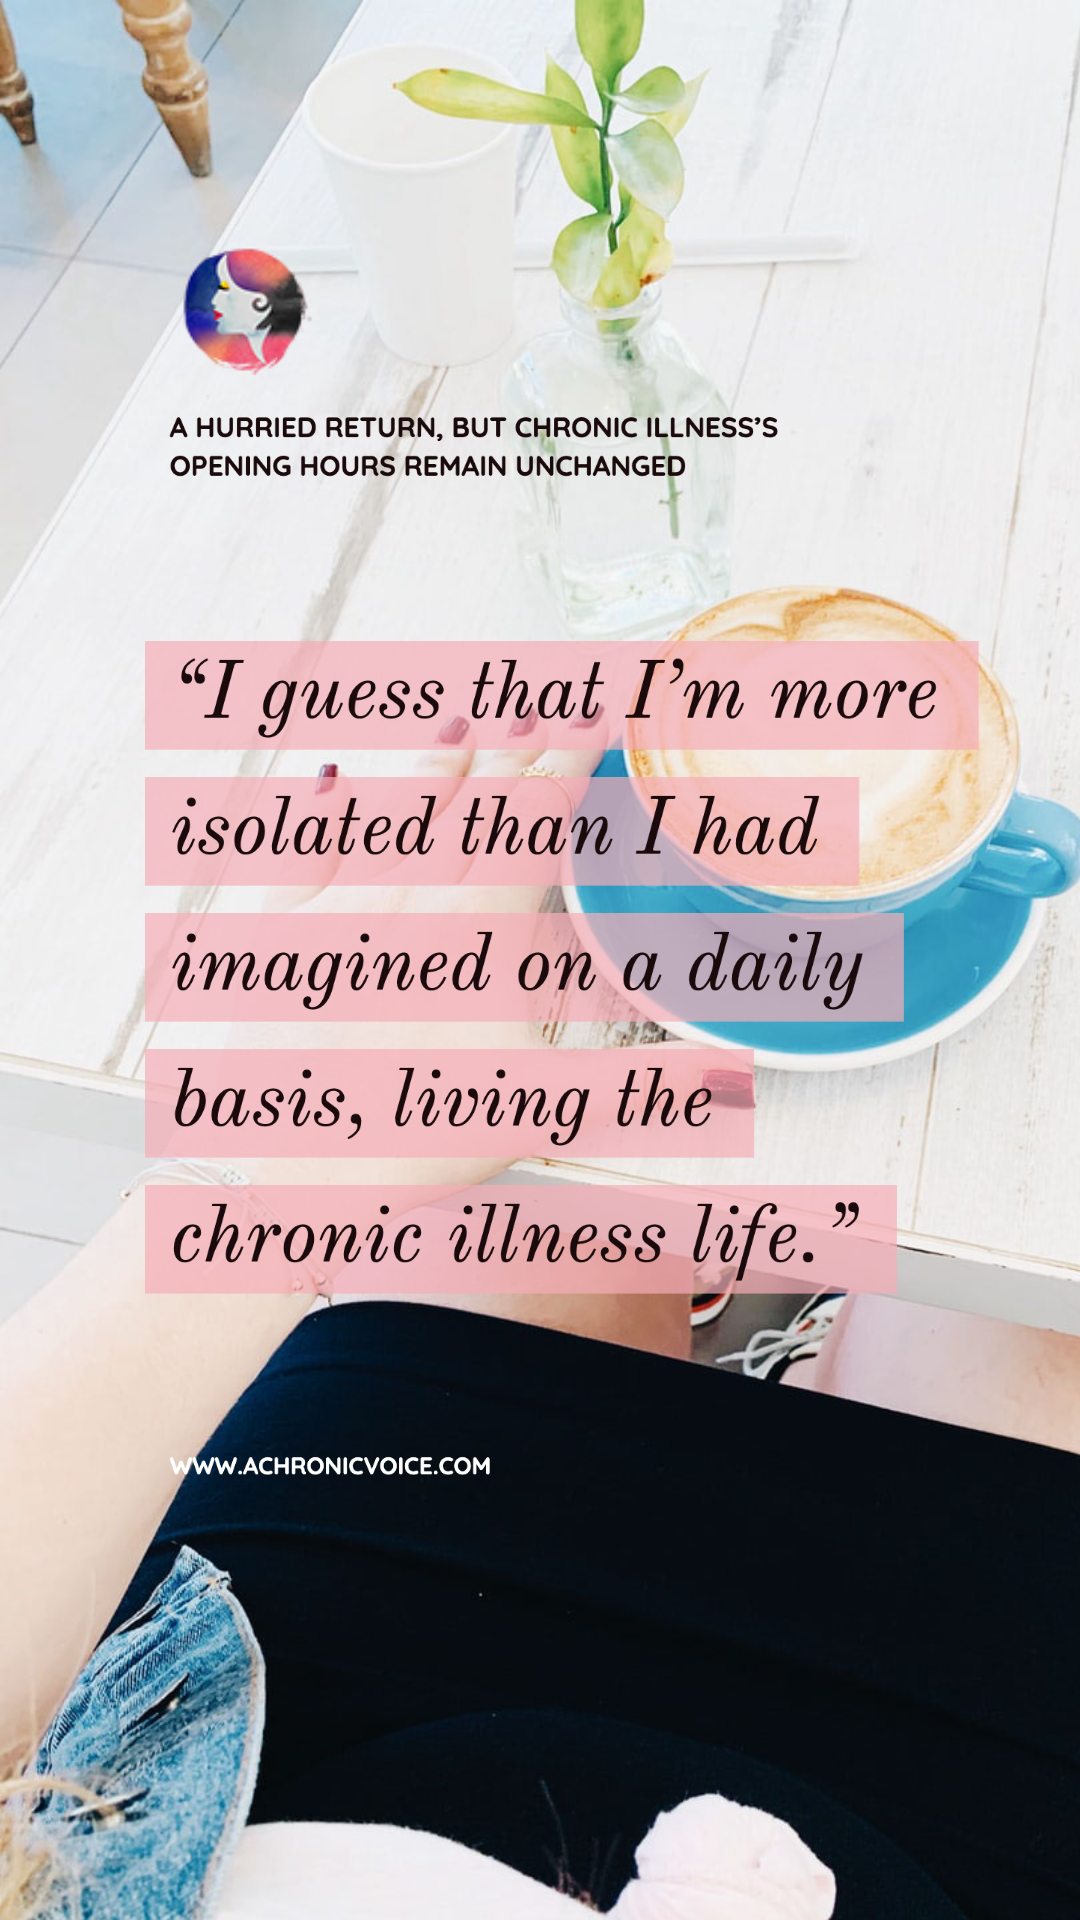 My life actually hasn't changed all that much with the self-isolation and social distancing in place. I guess that I'm more isolated than I had imagined on a daily basis, living the chronic illness life. - A Chronic Voice